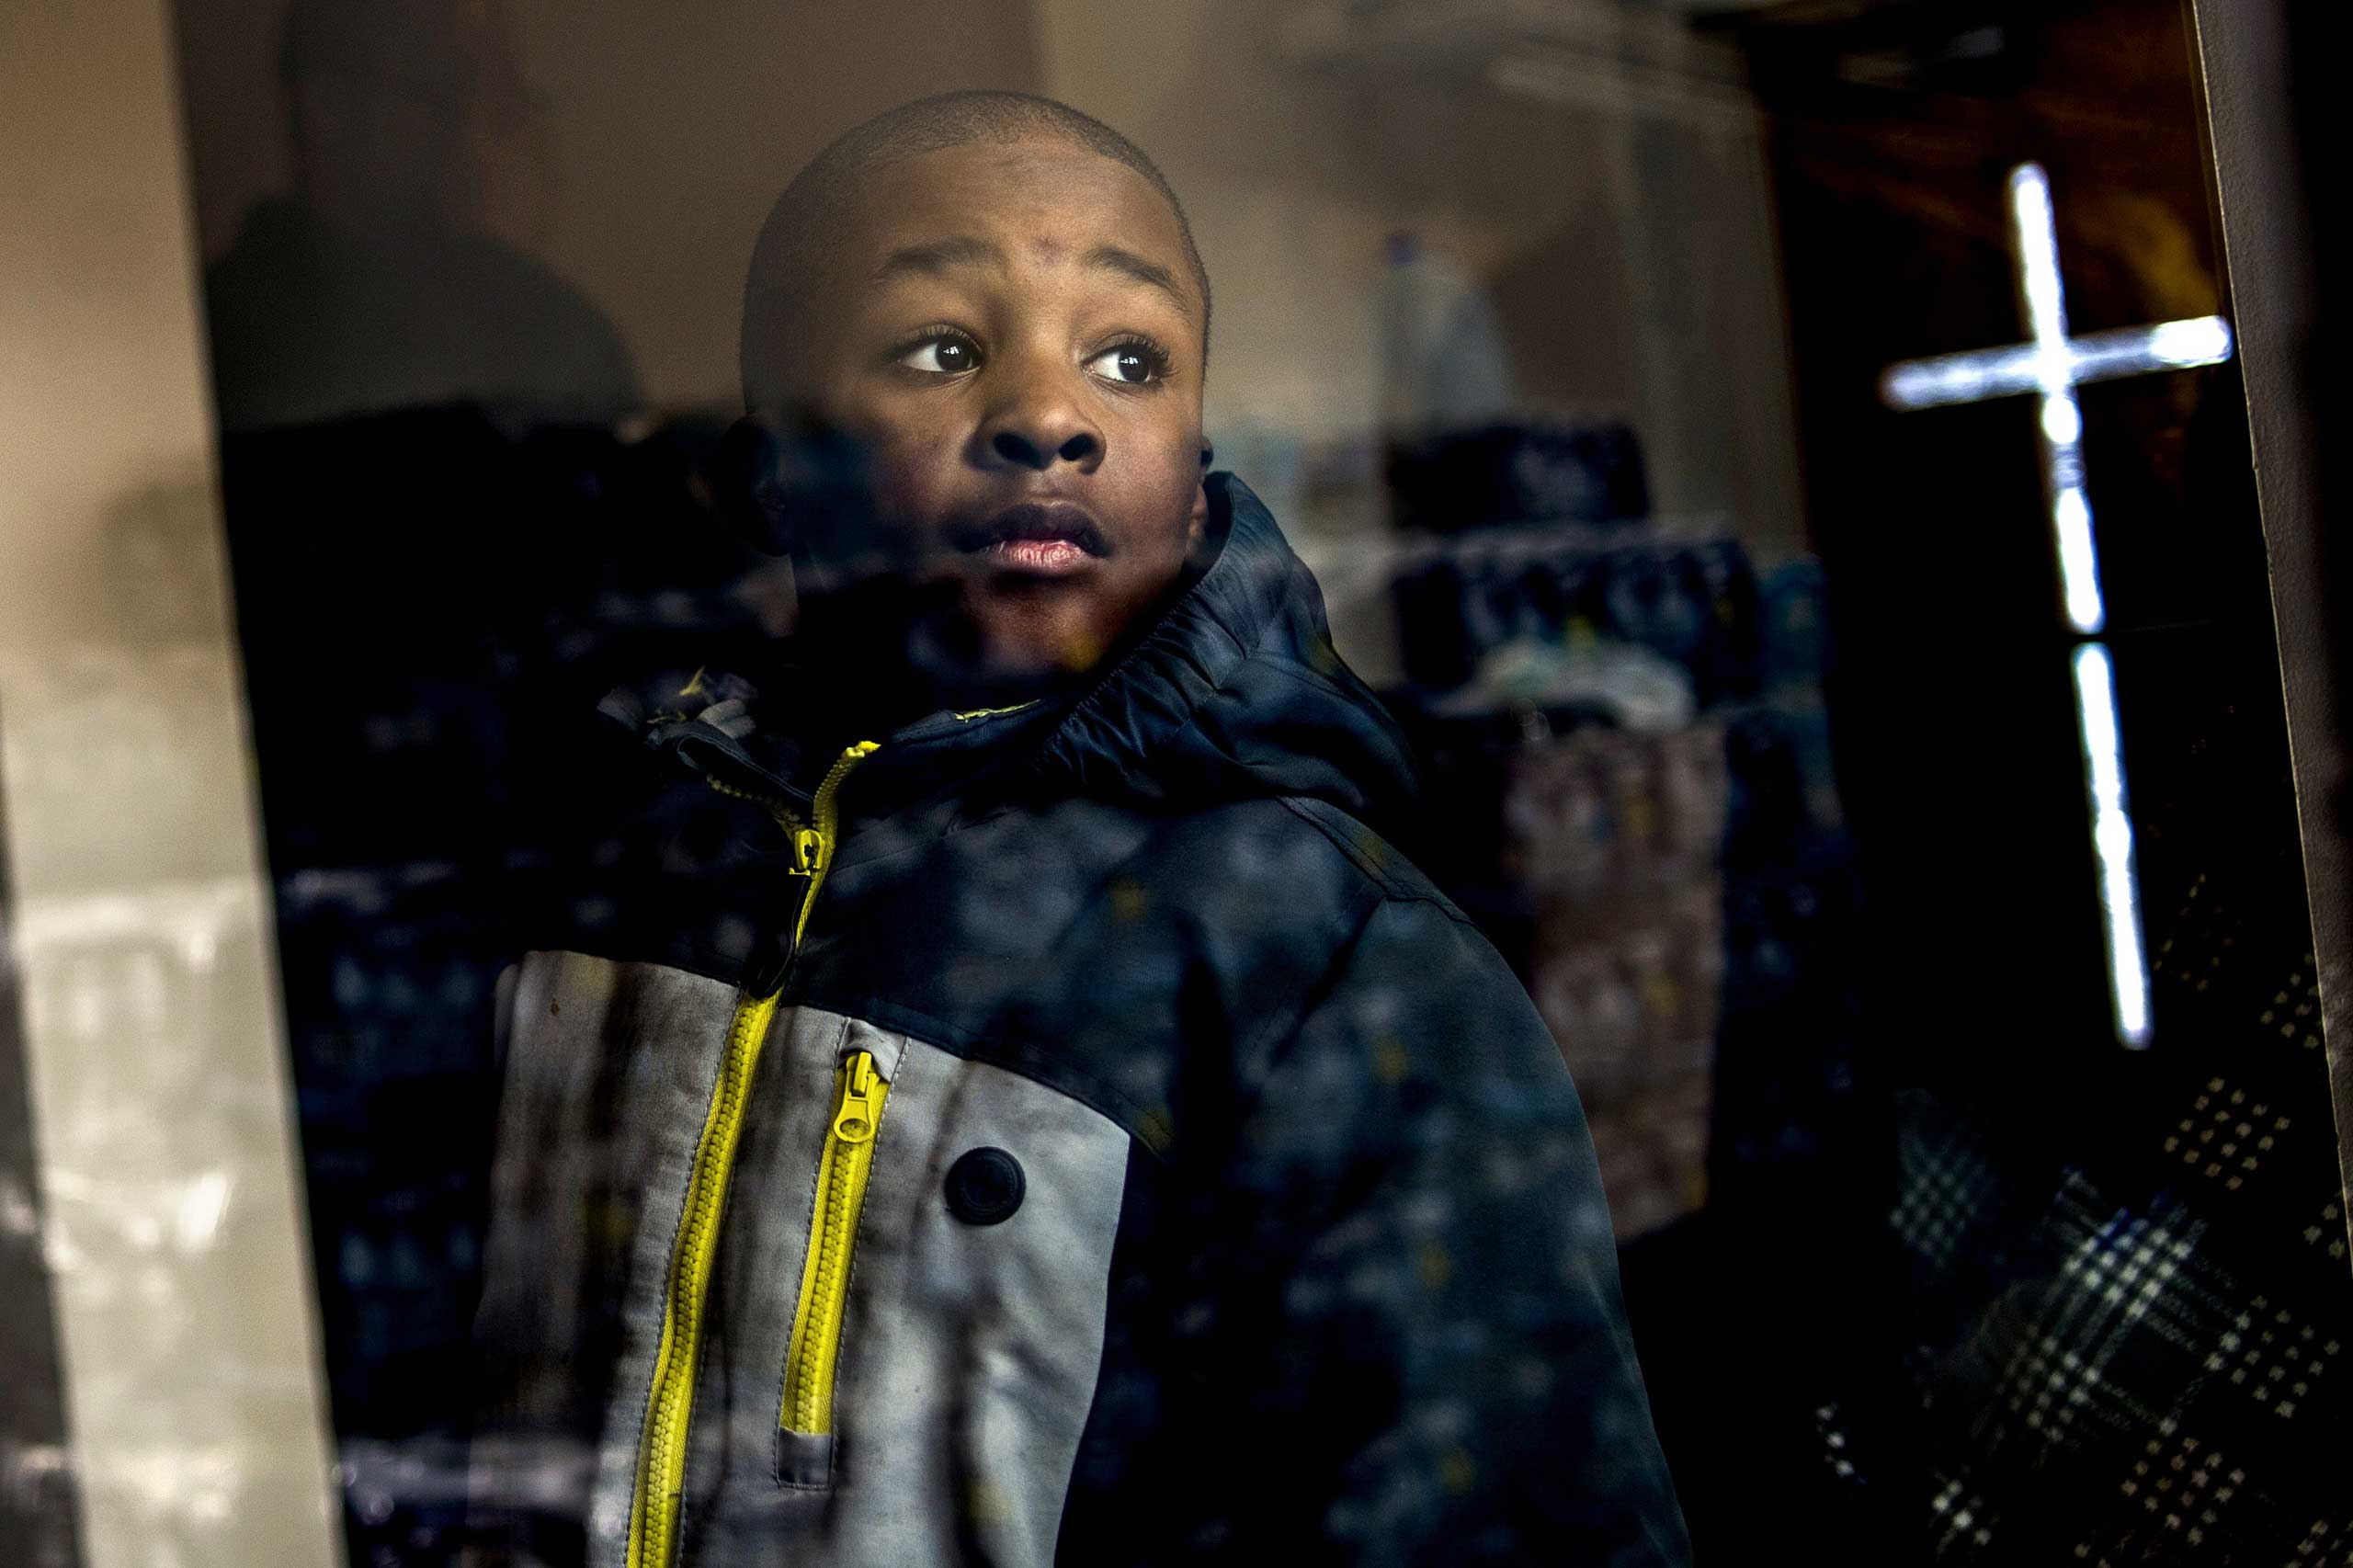 Detroit resident Jaiden Ellis, 8, looks at stacks of free bottled water to be given to the congregation while the Rev. Jesse Jackson, a civil rights leader, discusses the ongoing Flint water crisis on Jan. 17, 2016, in Flint, Mich.